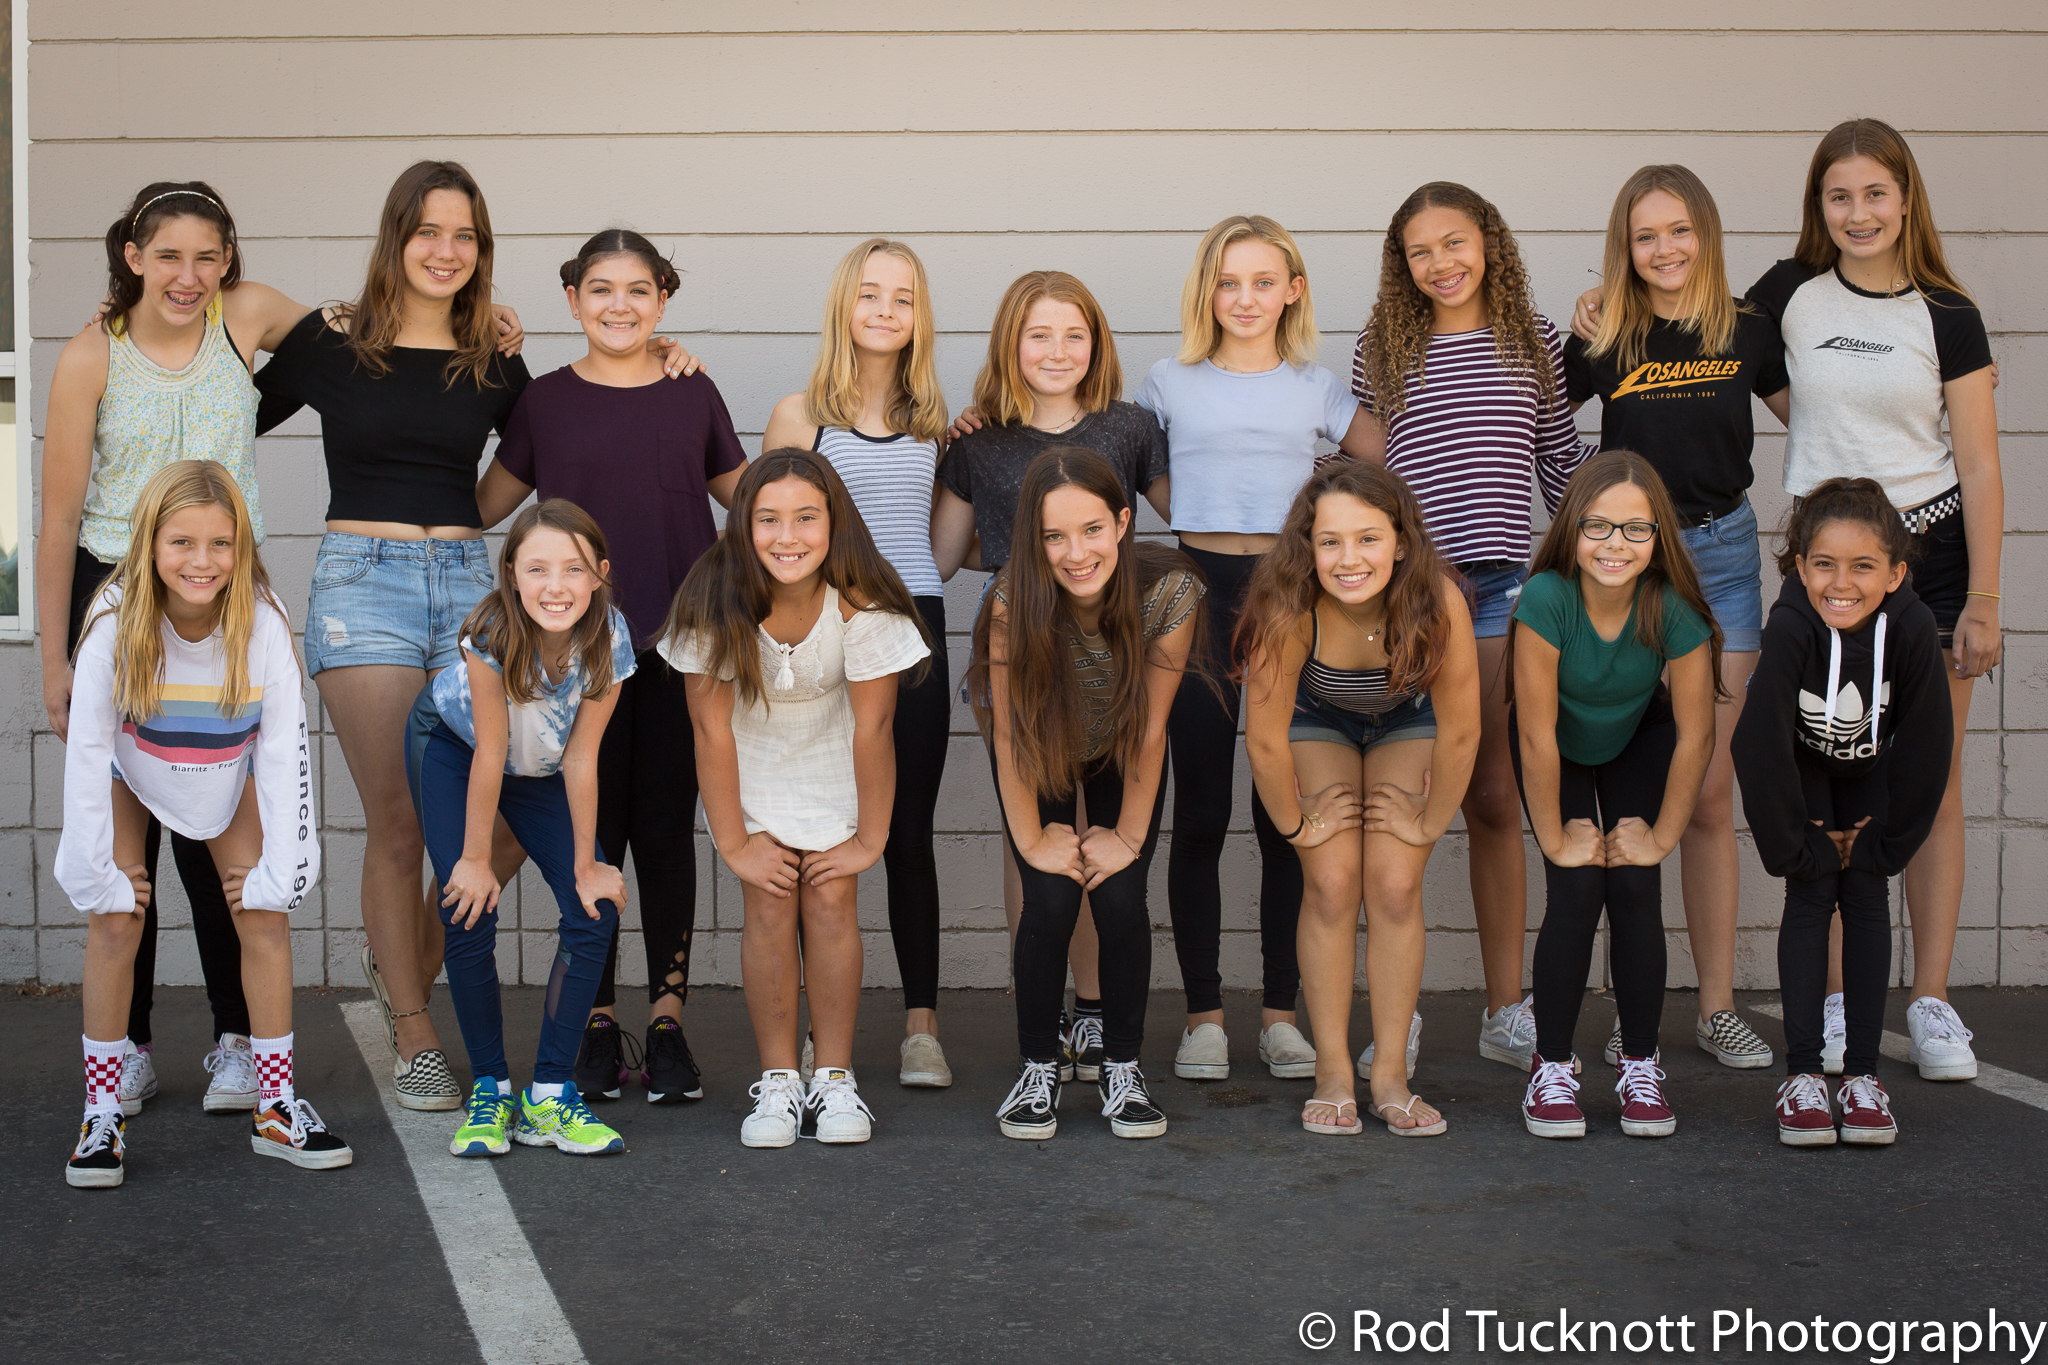 JUNIOR CREW  Back Row: Sofia Budke, Adela Weidmann, Riley Beainy-Johnson, Becca Poett, Siri Jacobson, Hope Willbanks, Jaz Gordon, Maddie Budow, Daylon Donati Front Row: Emma Hall, Cameron Weathers, Belle Olivera, Shelby Brewer, Taliah Ellis, Lia Hafner, Kayli Scafidi, (not pictured) Lily Kozlowski